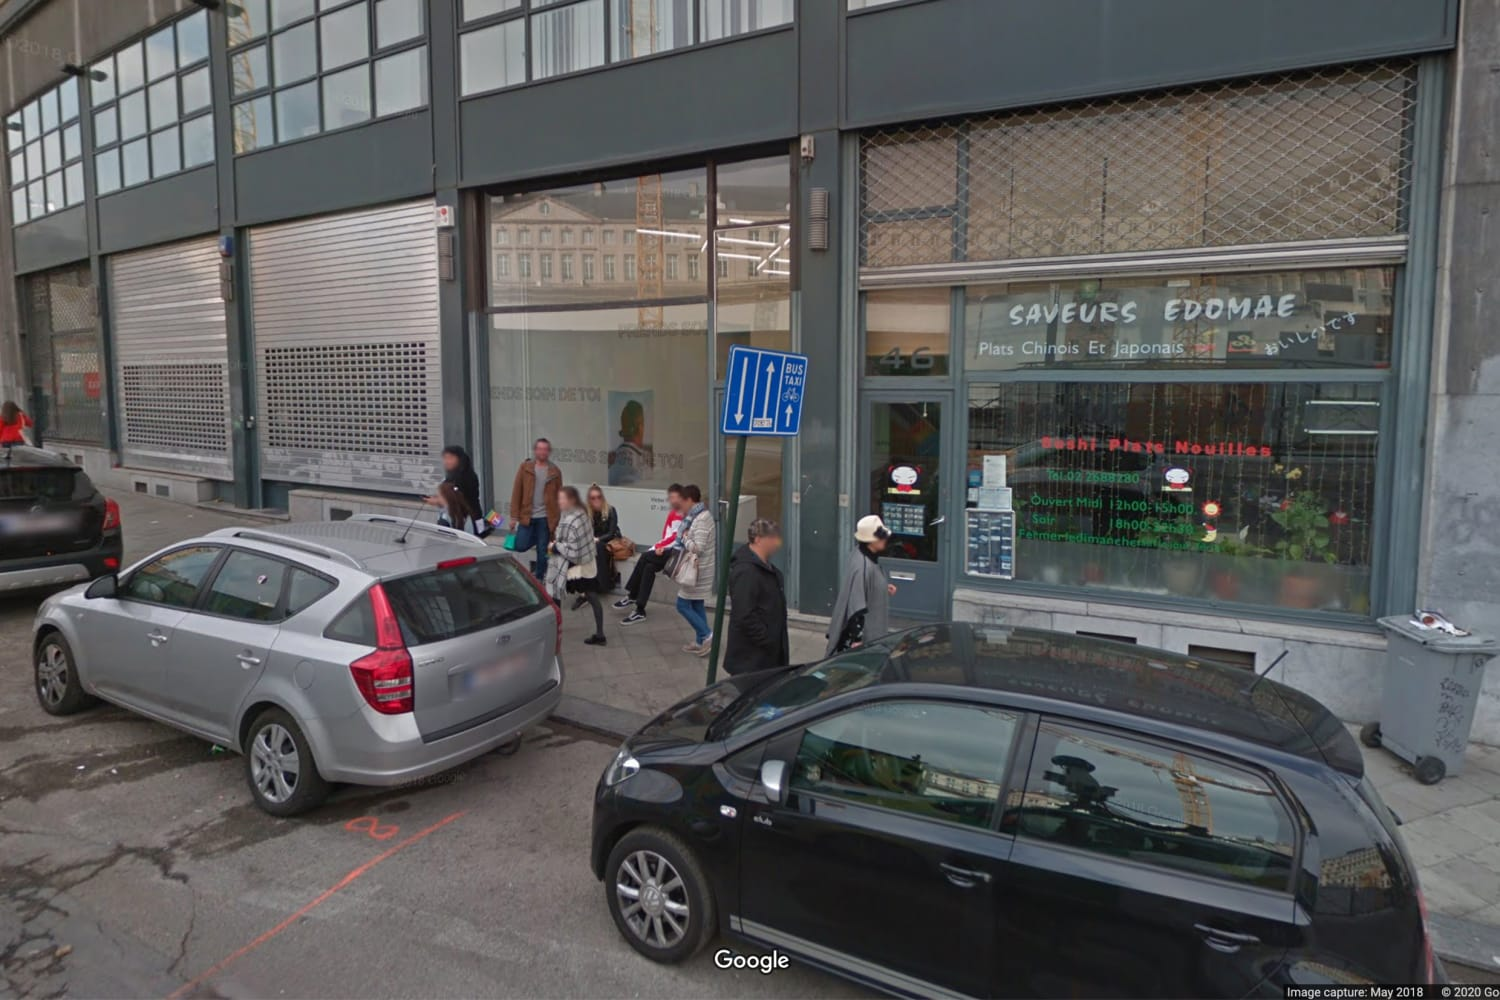 A view from Bidules Rue Ravenstein Bruxelles on Google Maps back, May 2018, Victor Pattyn is installing its exhibition